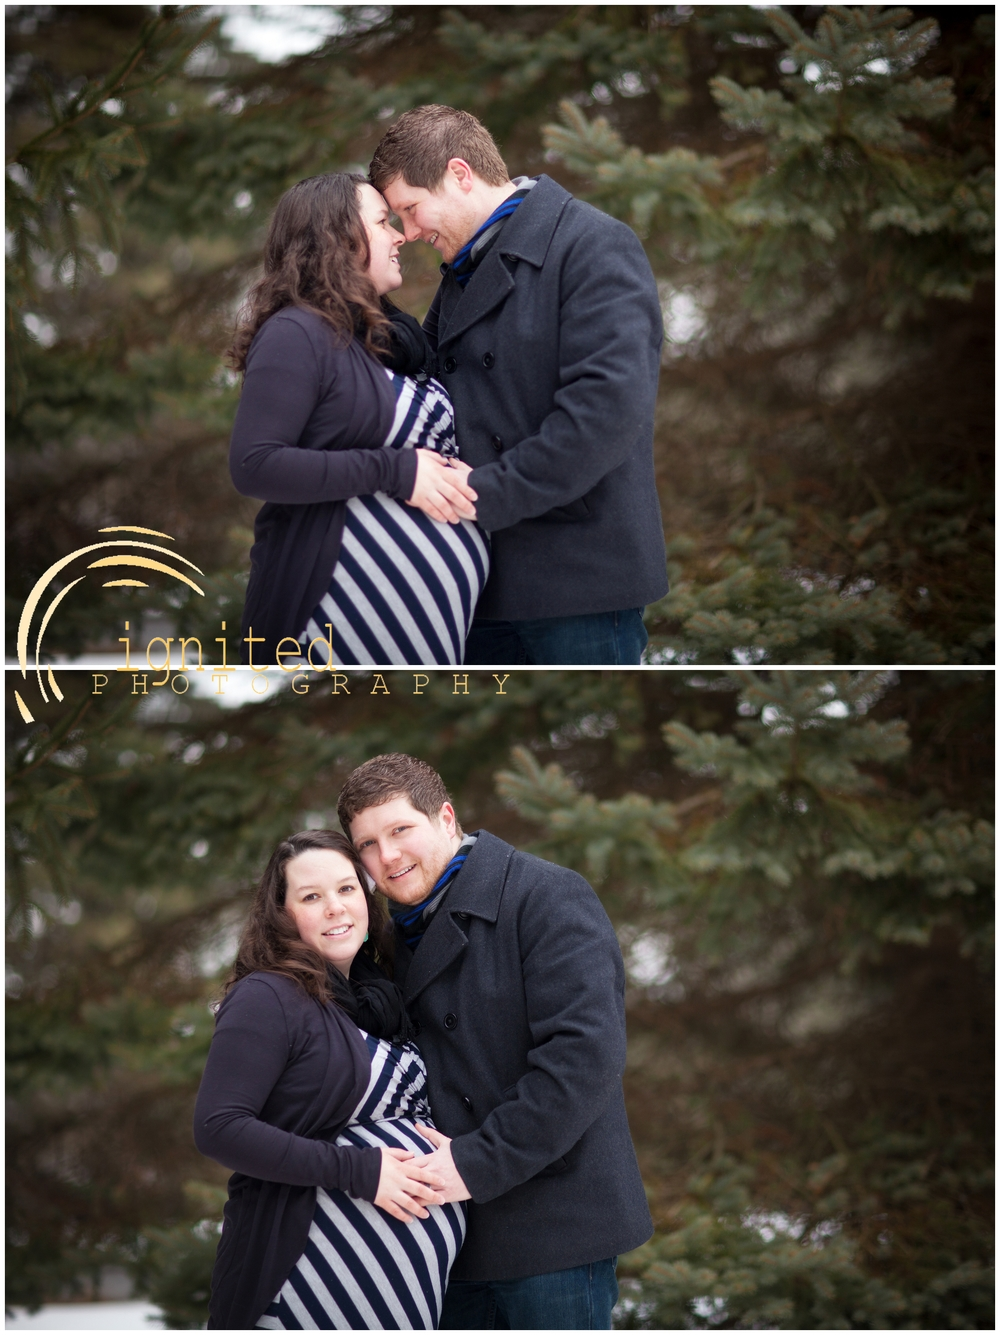 ignited Photography Wayne and Elizabeth Wright Maternity Portraits Brighton Howell Michigan_0002.jpg